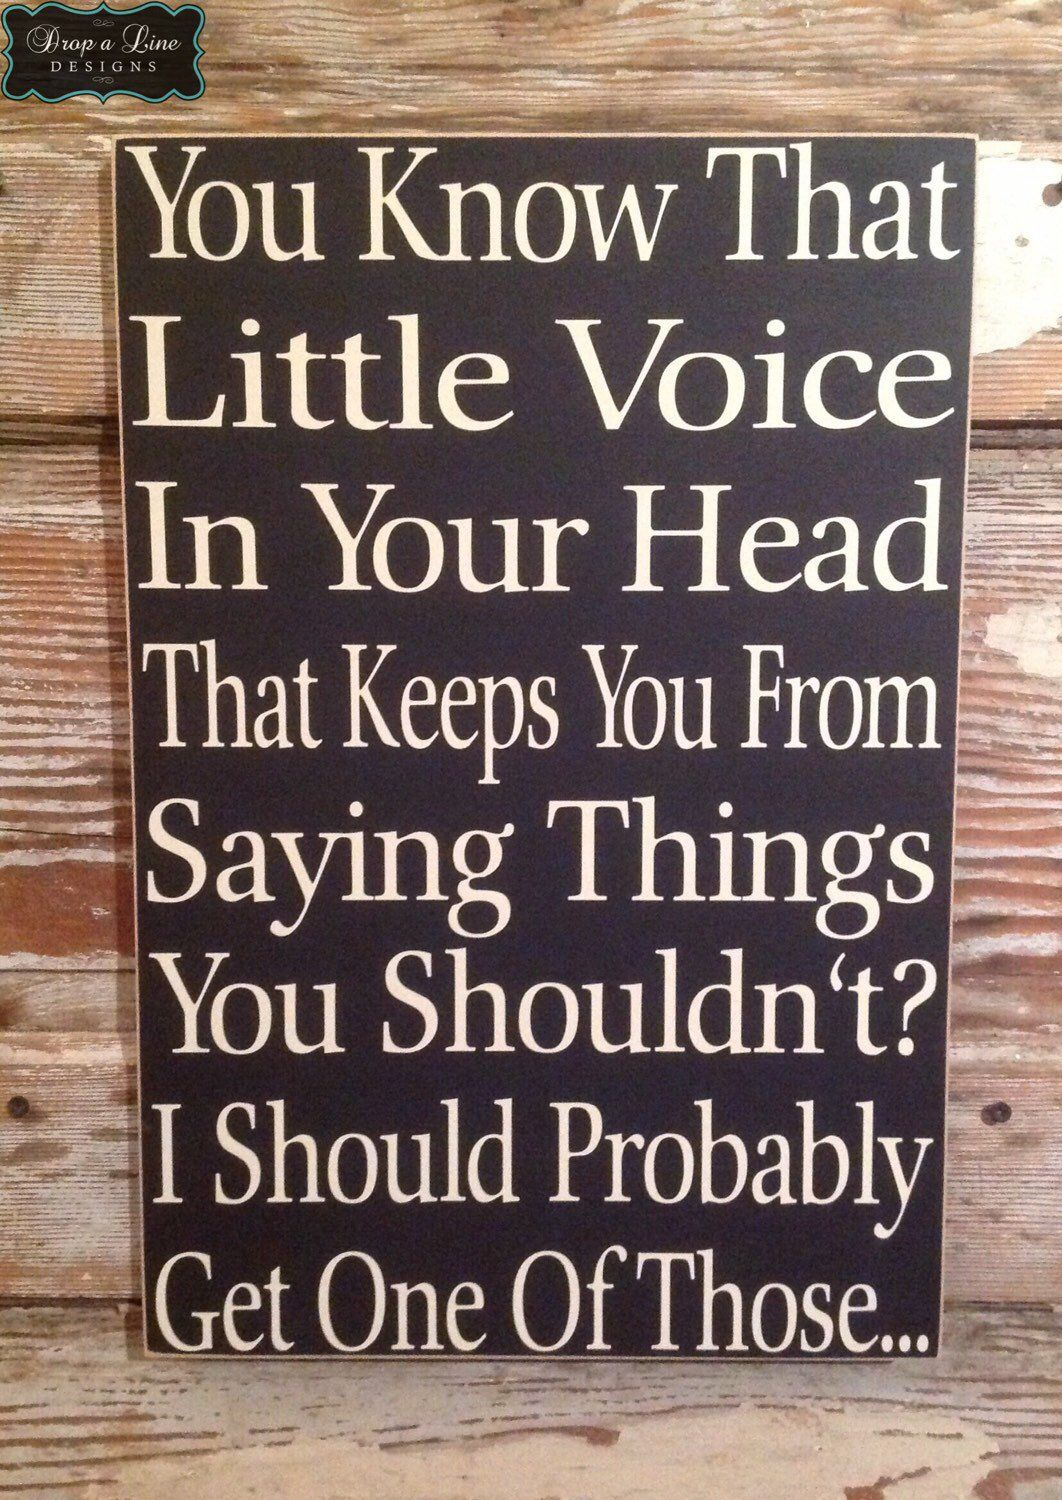 New Funny Signs Items similar to You Know That Little Voice In Your Head That Keeps You Fron Saying Things You Shouldn't?  I Should Probably Get One Of Those...  Funny Sign on Etsy 7